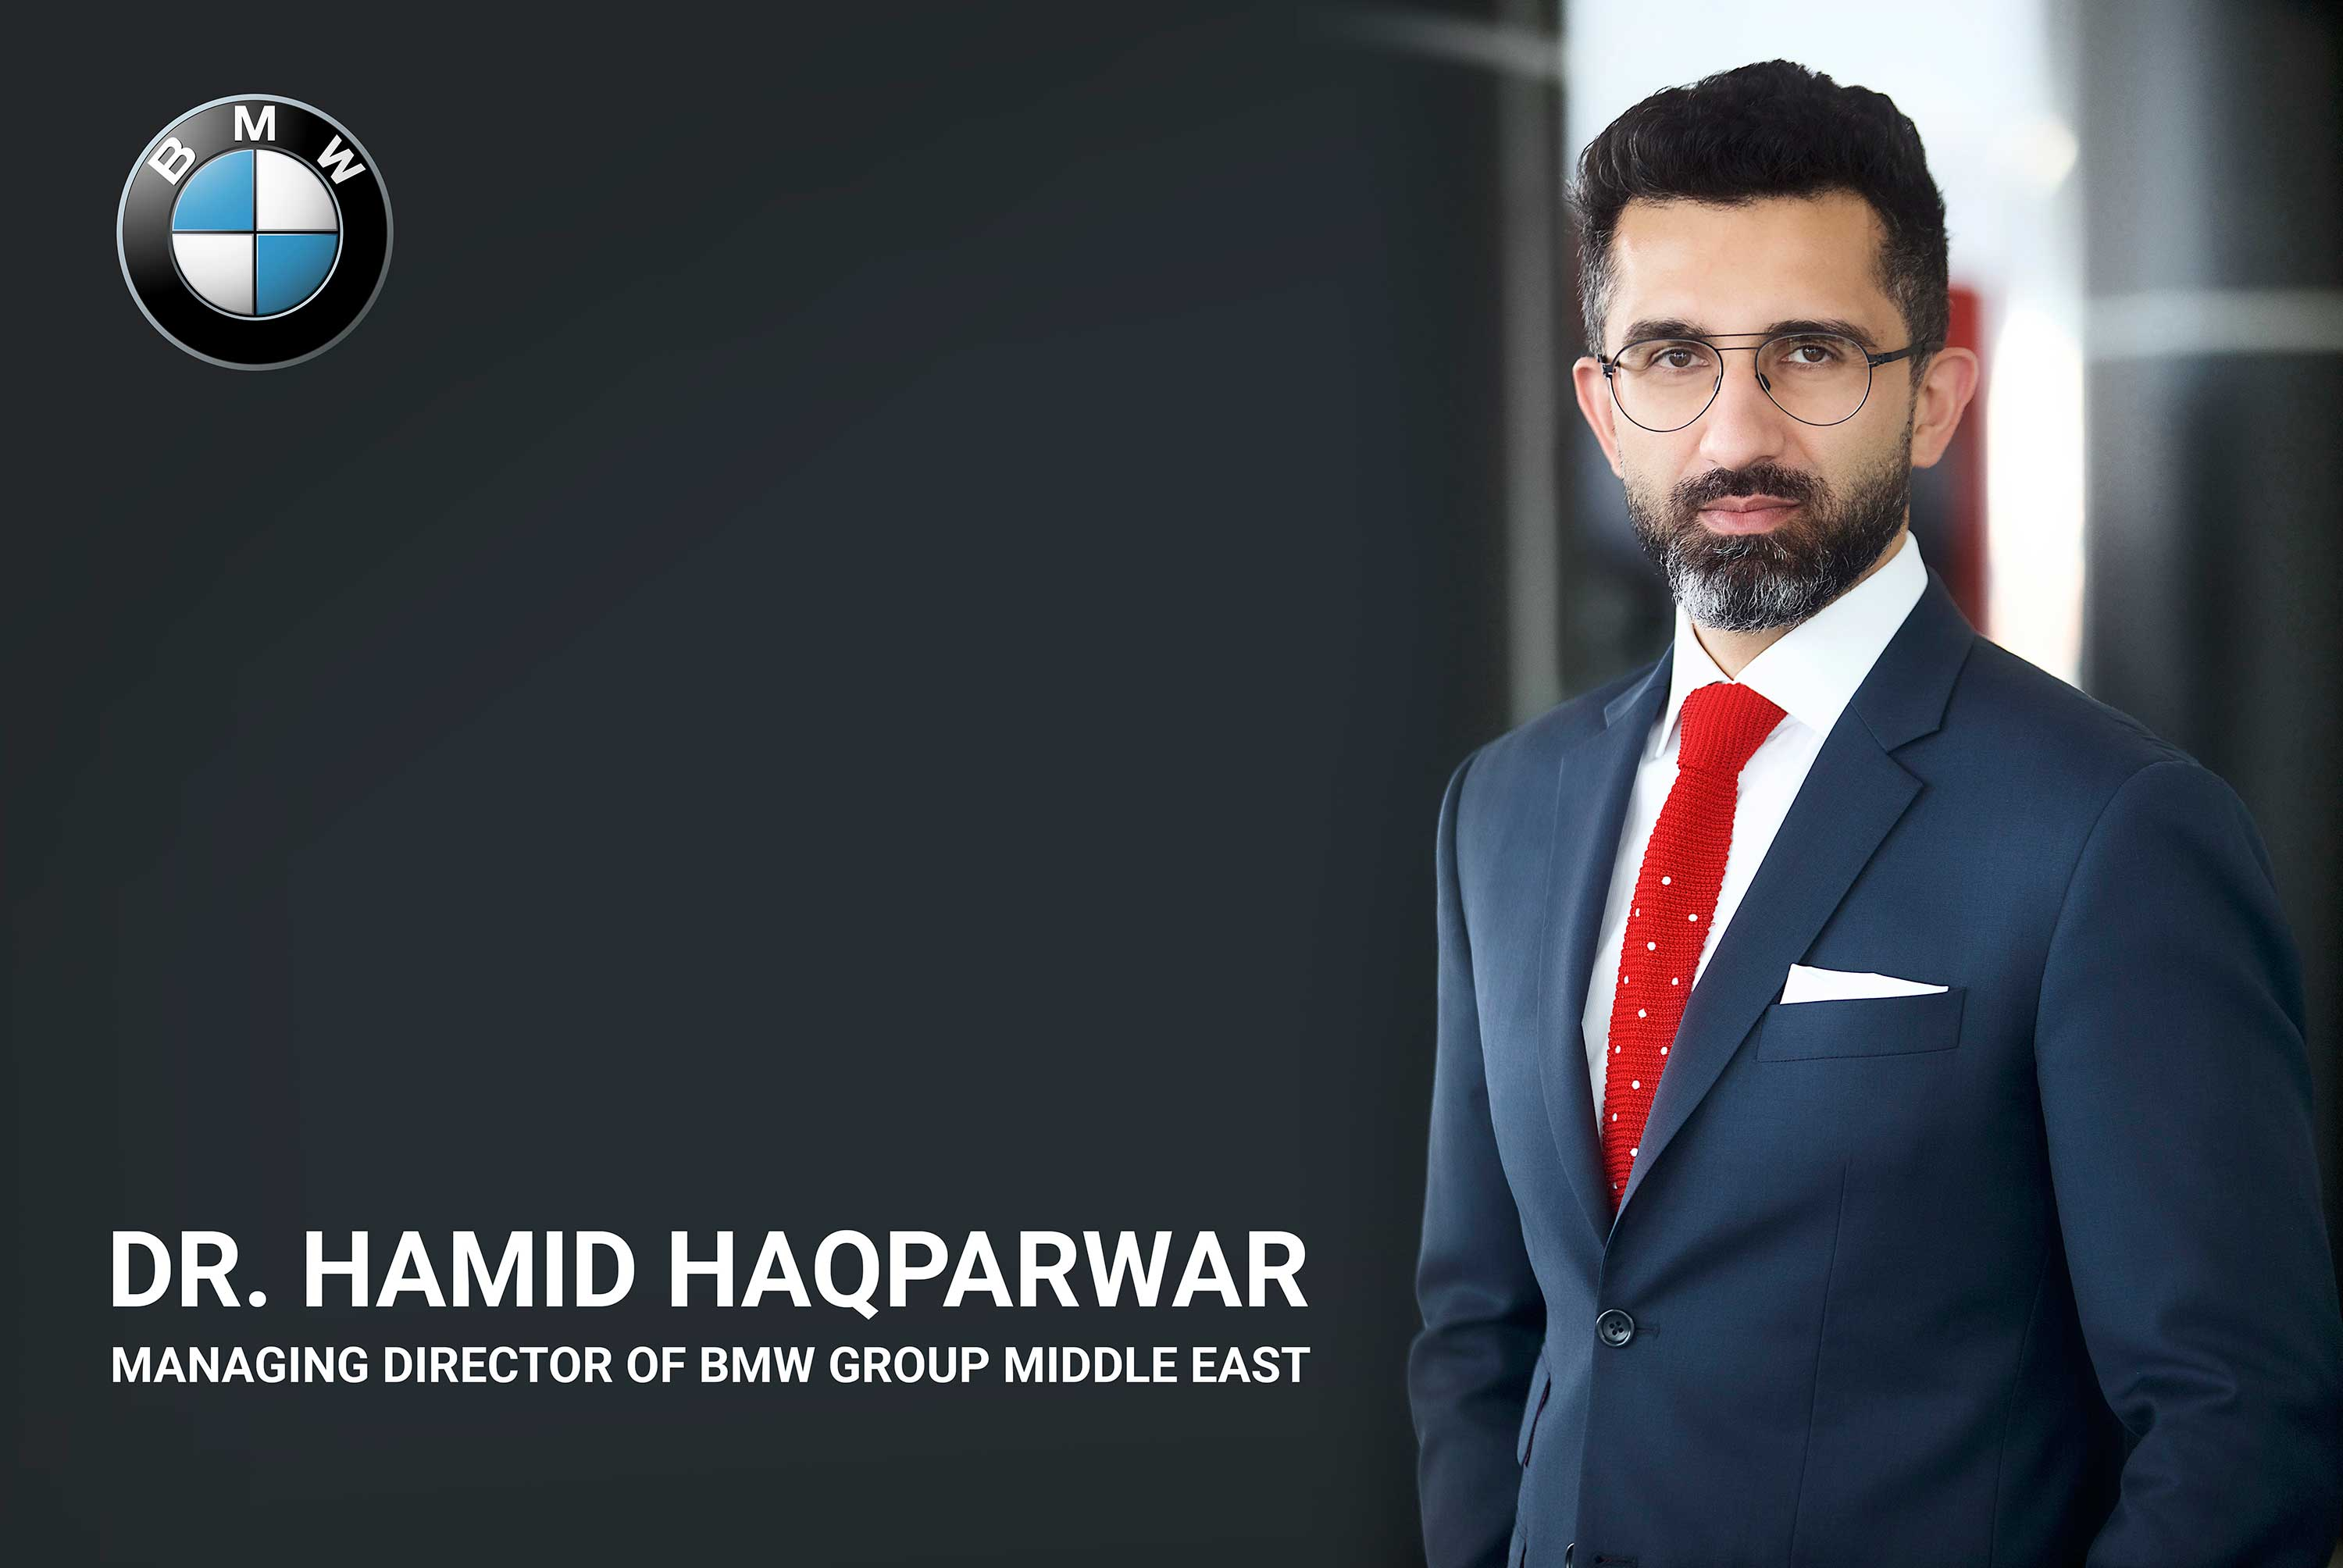 Dr. Hamid Haqparwar Managing Director of BMW Group Middle East